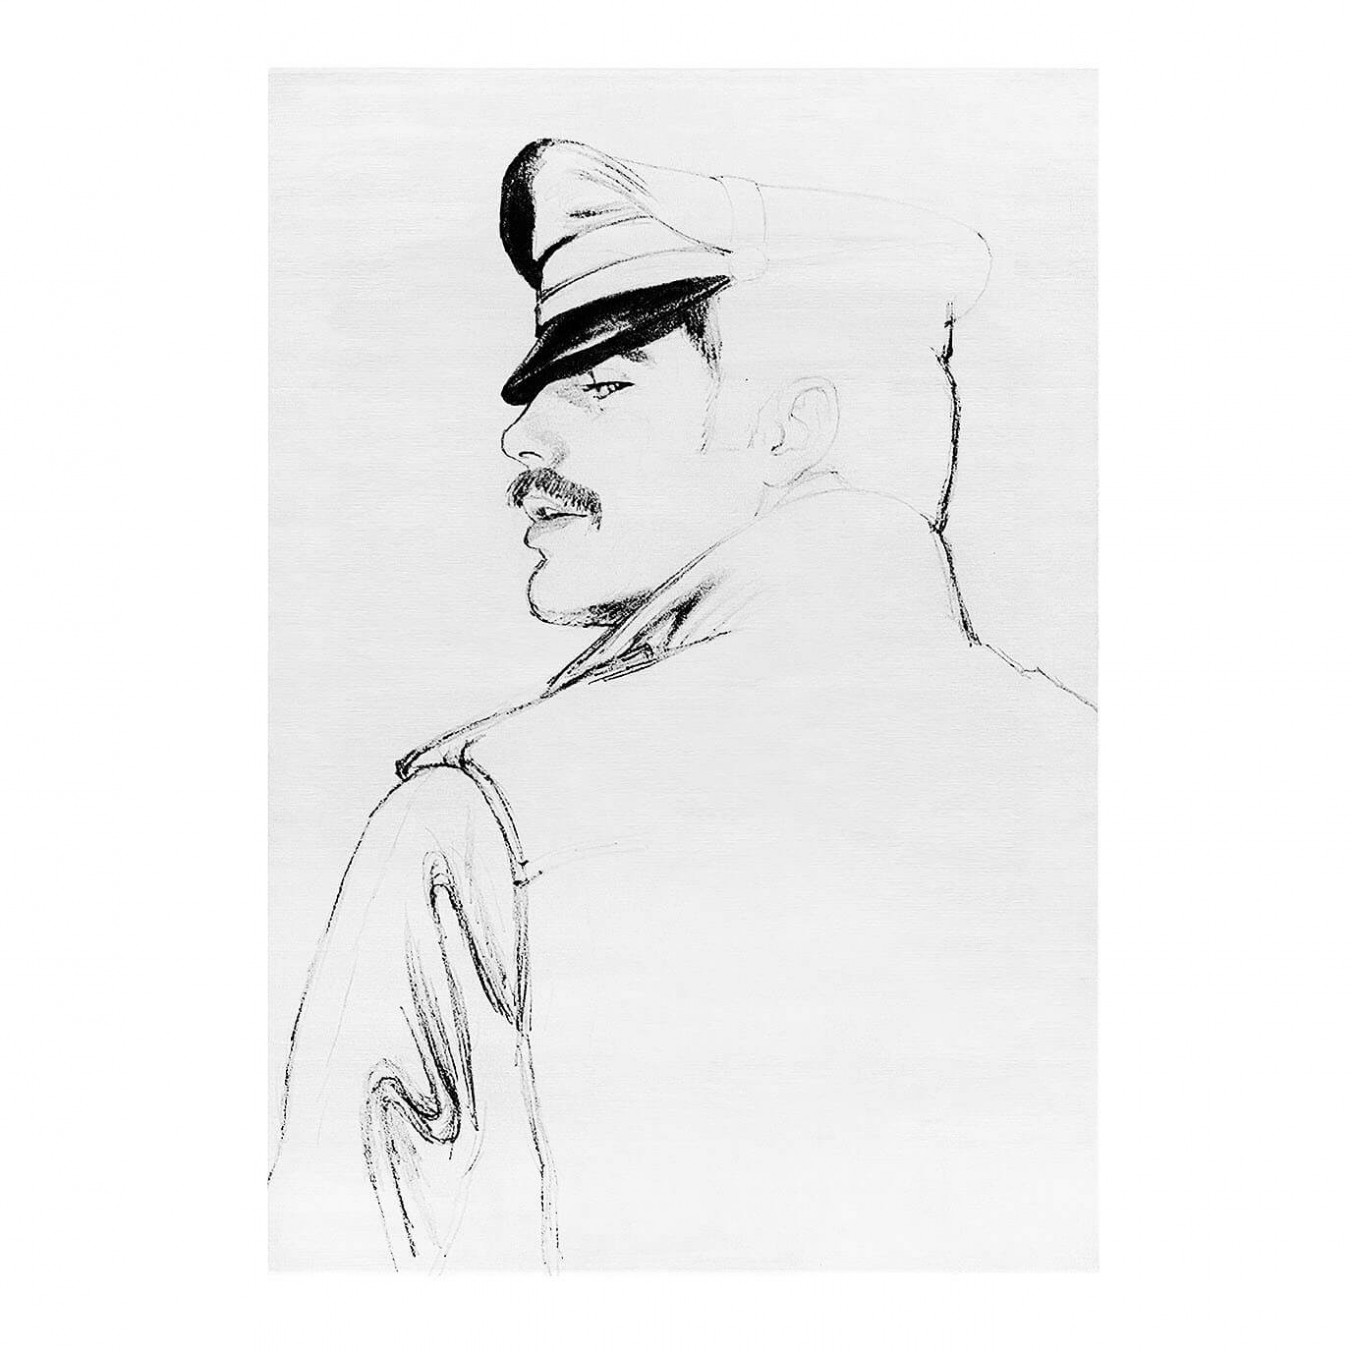 TOM OF FINLAND - Untitled, 1977